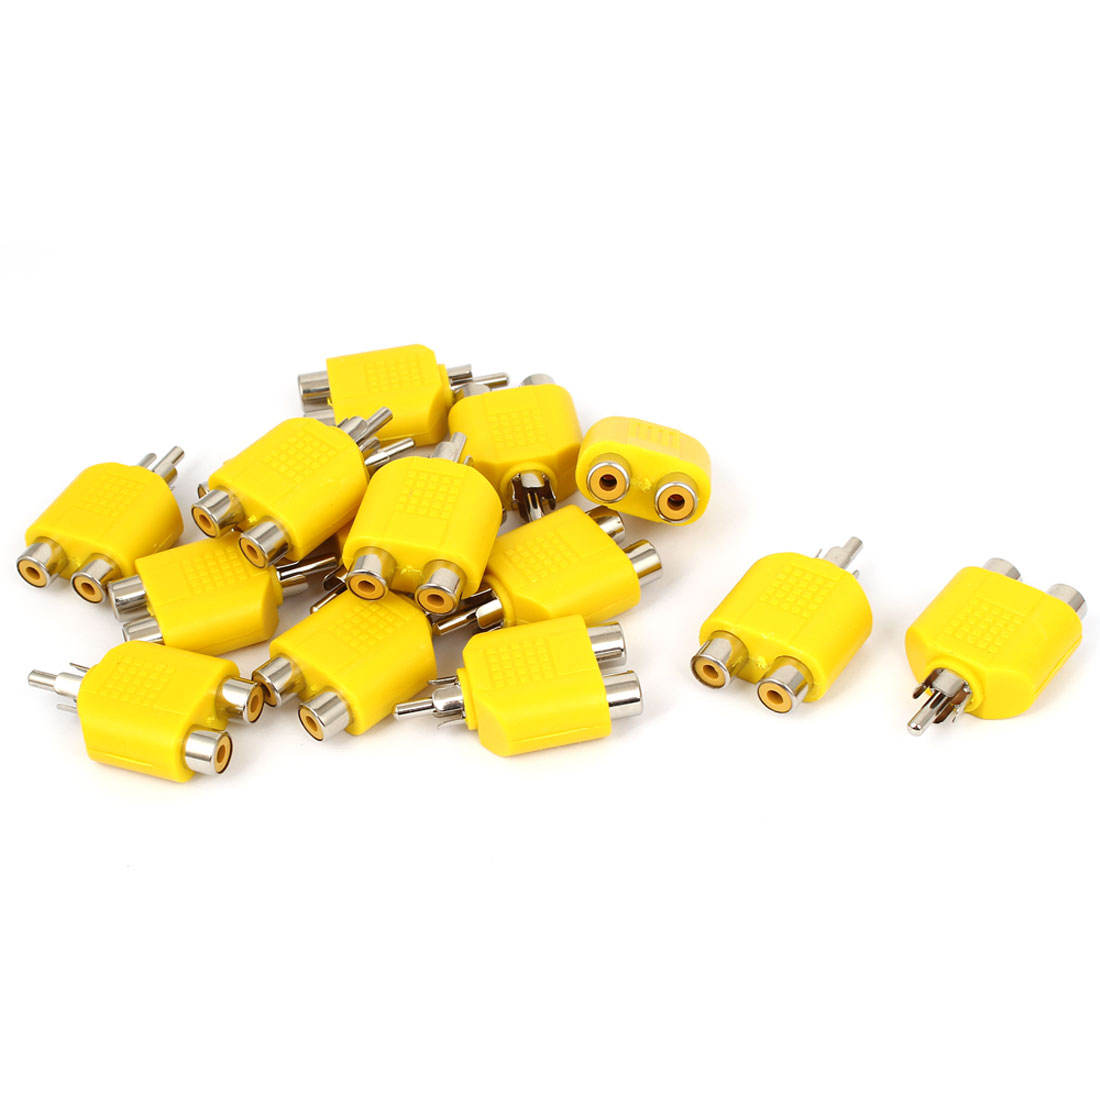 Yellow RCA Y Splitter Male to 2 Female M/F Stereo Audio Video Adaptor Connector 15pcs